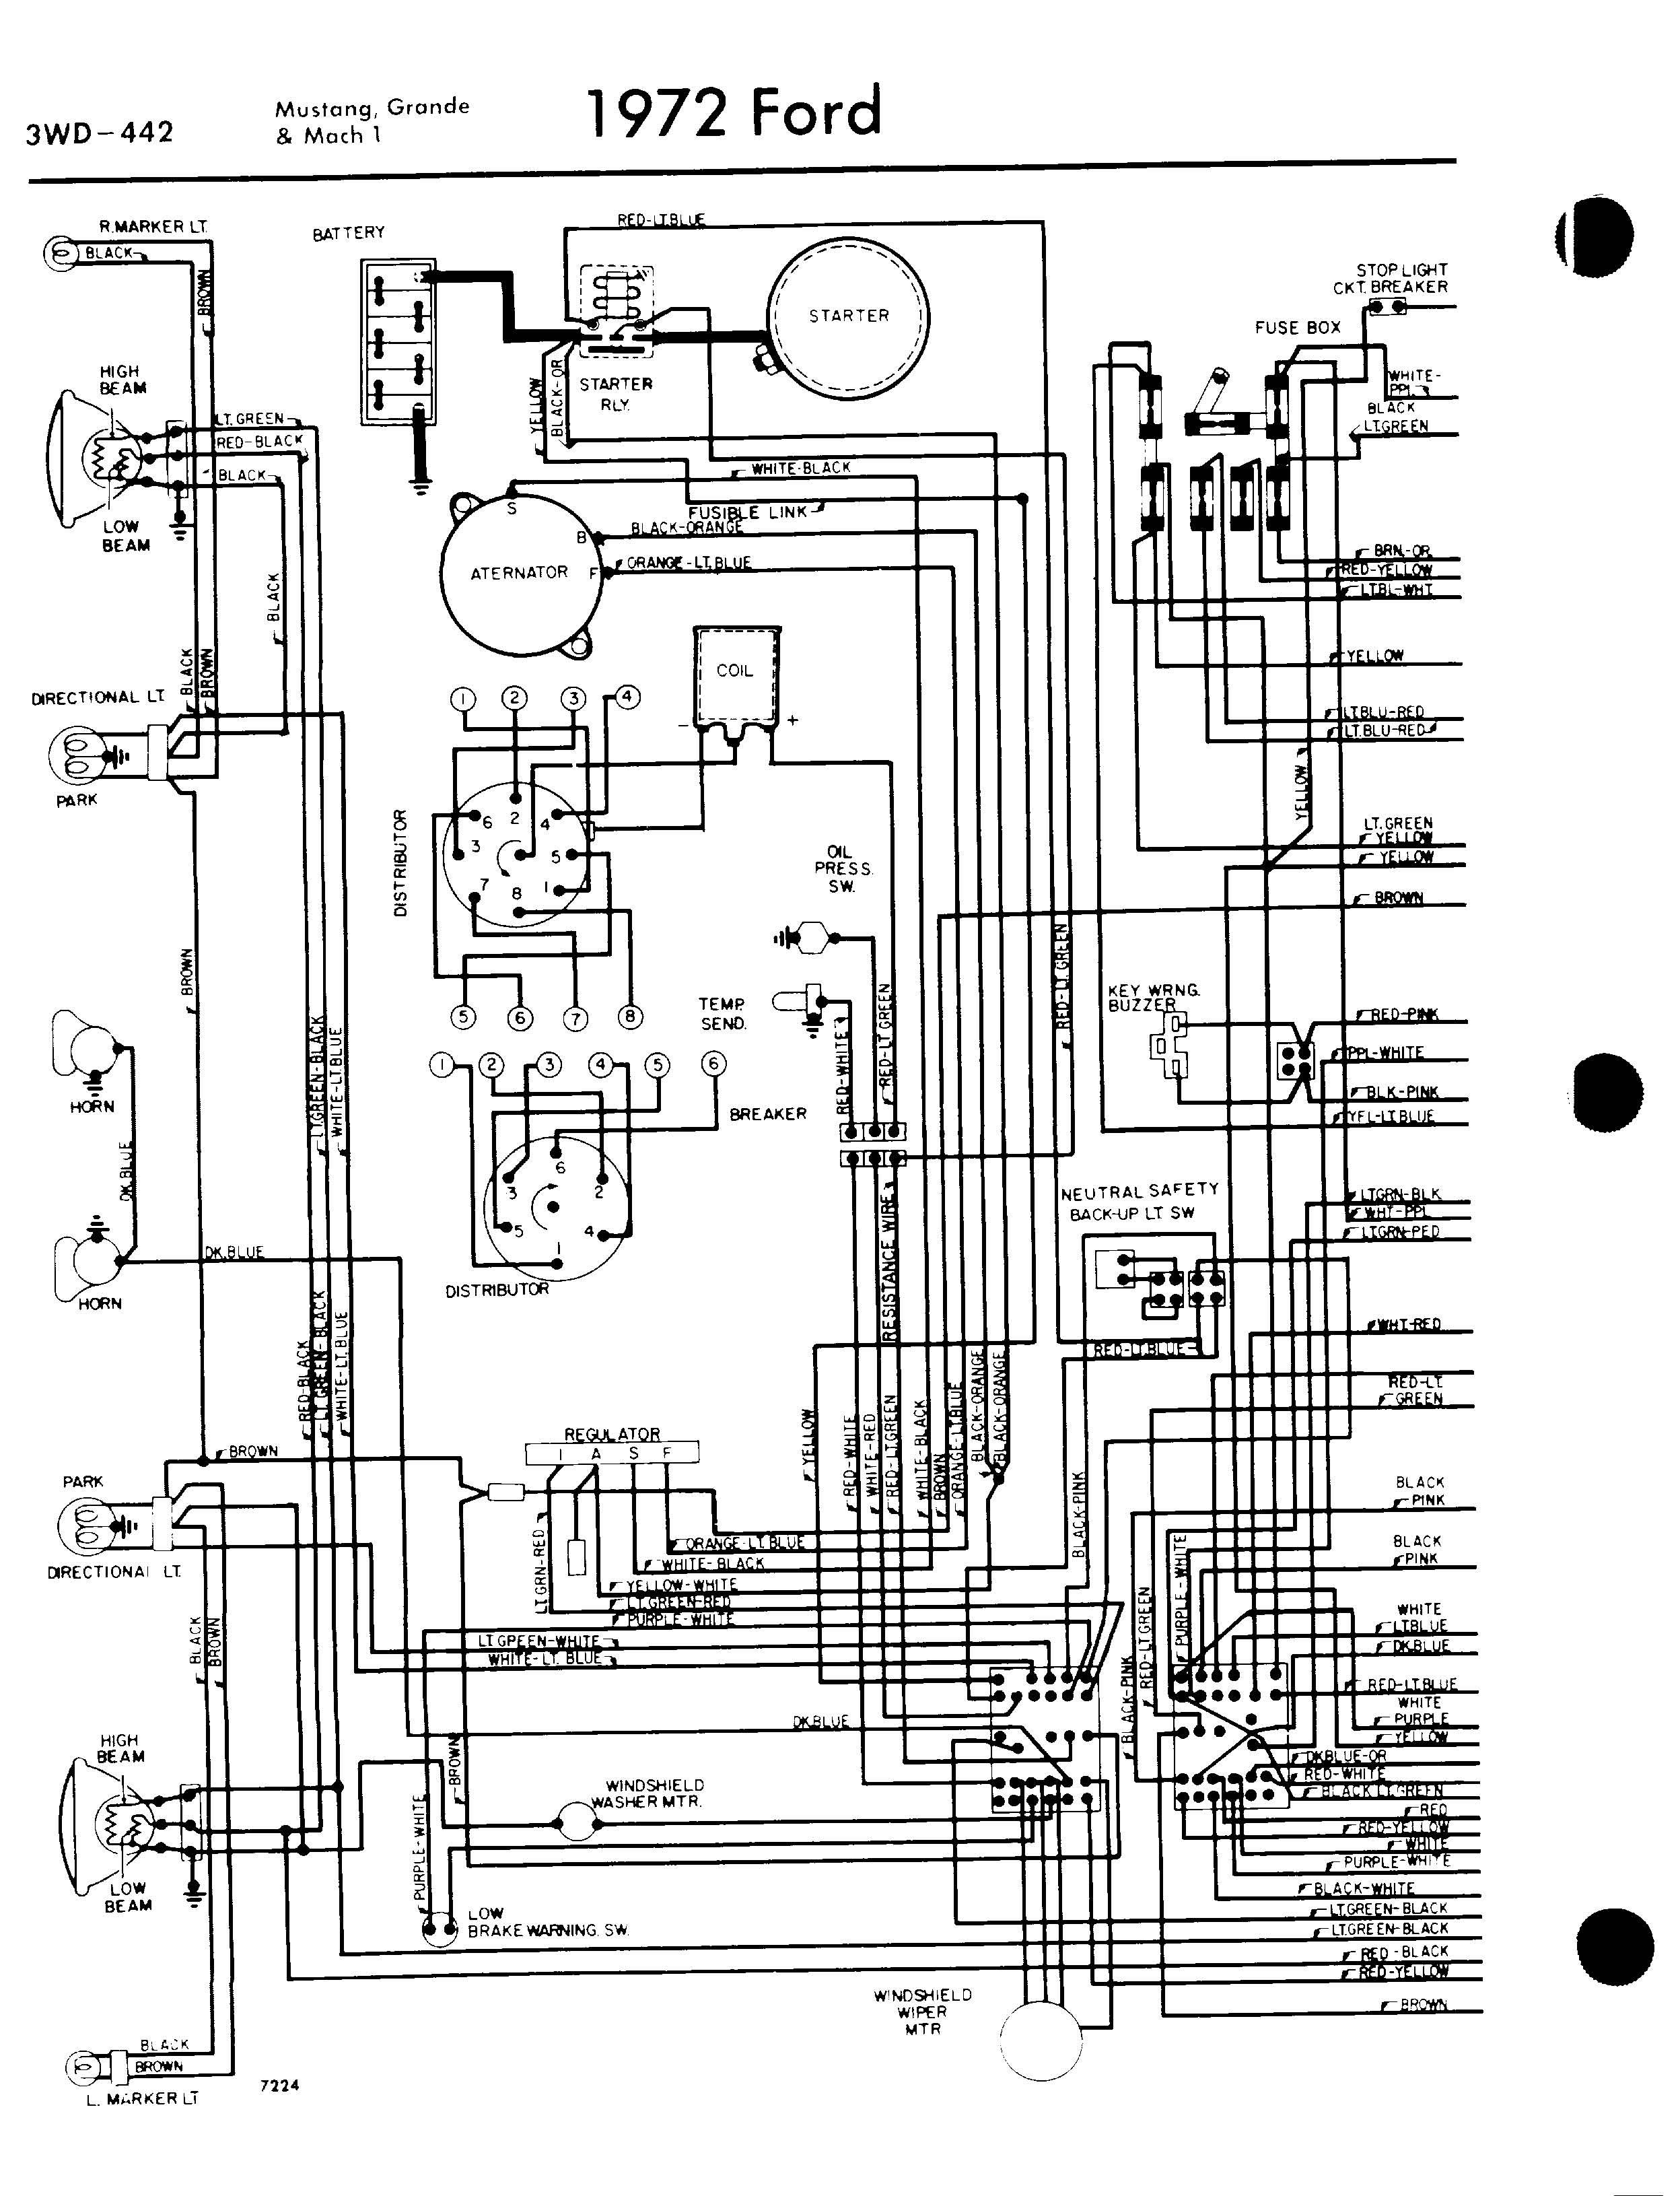 1973 mustang radio wiring diagrams diy enthusiasts wiring diagrams u2022 rh okdrywall co